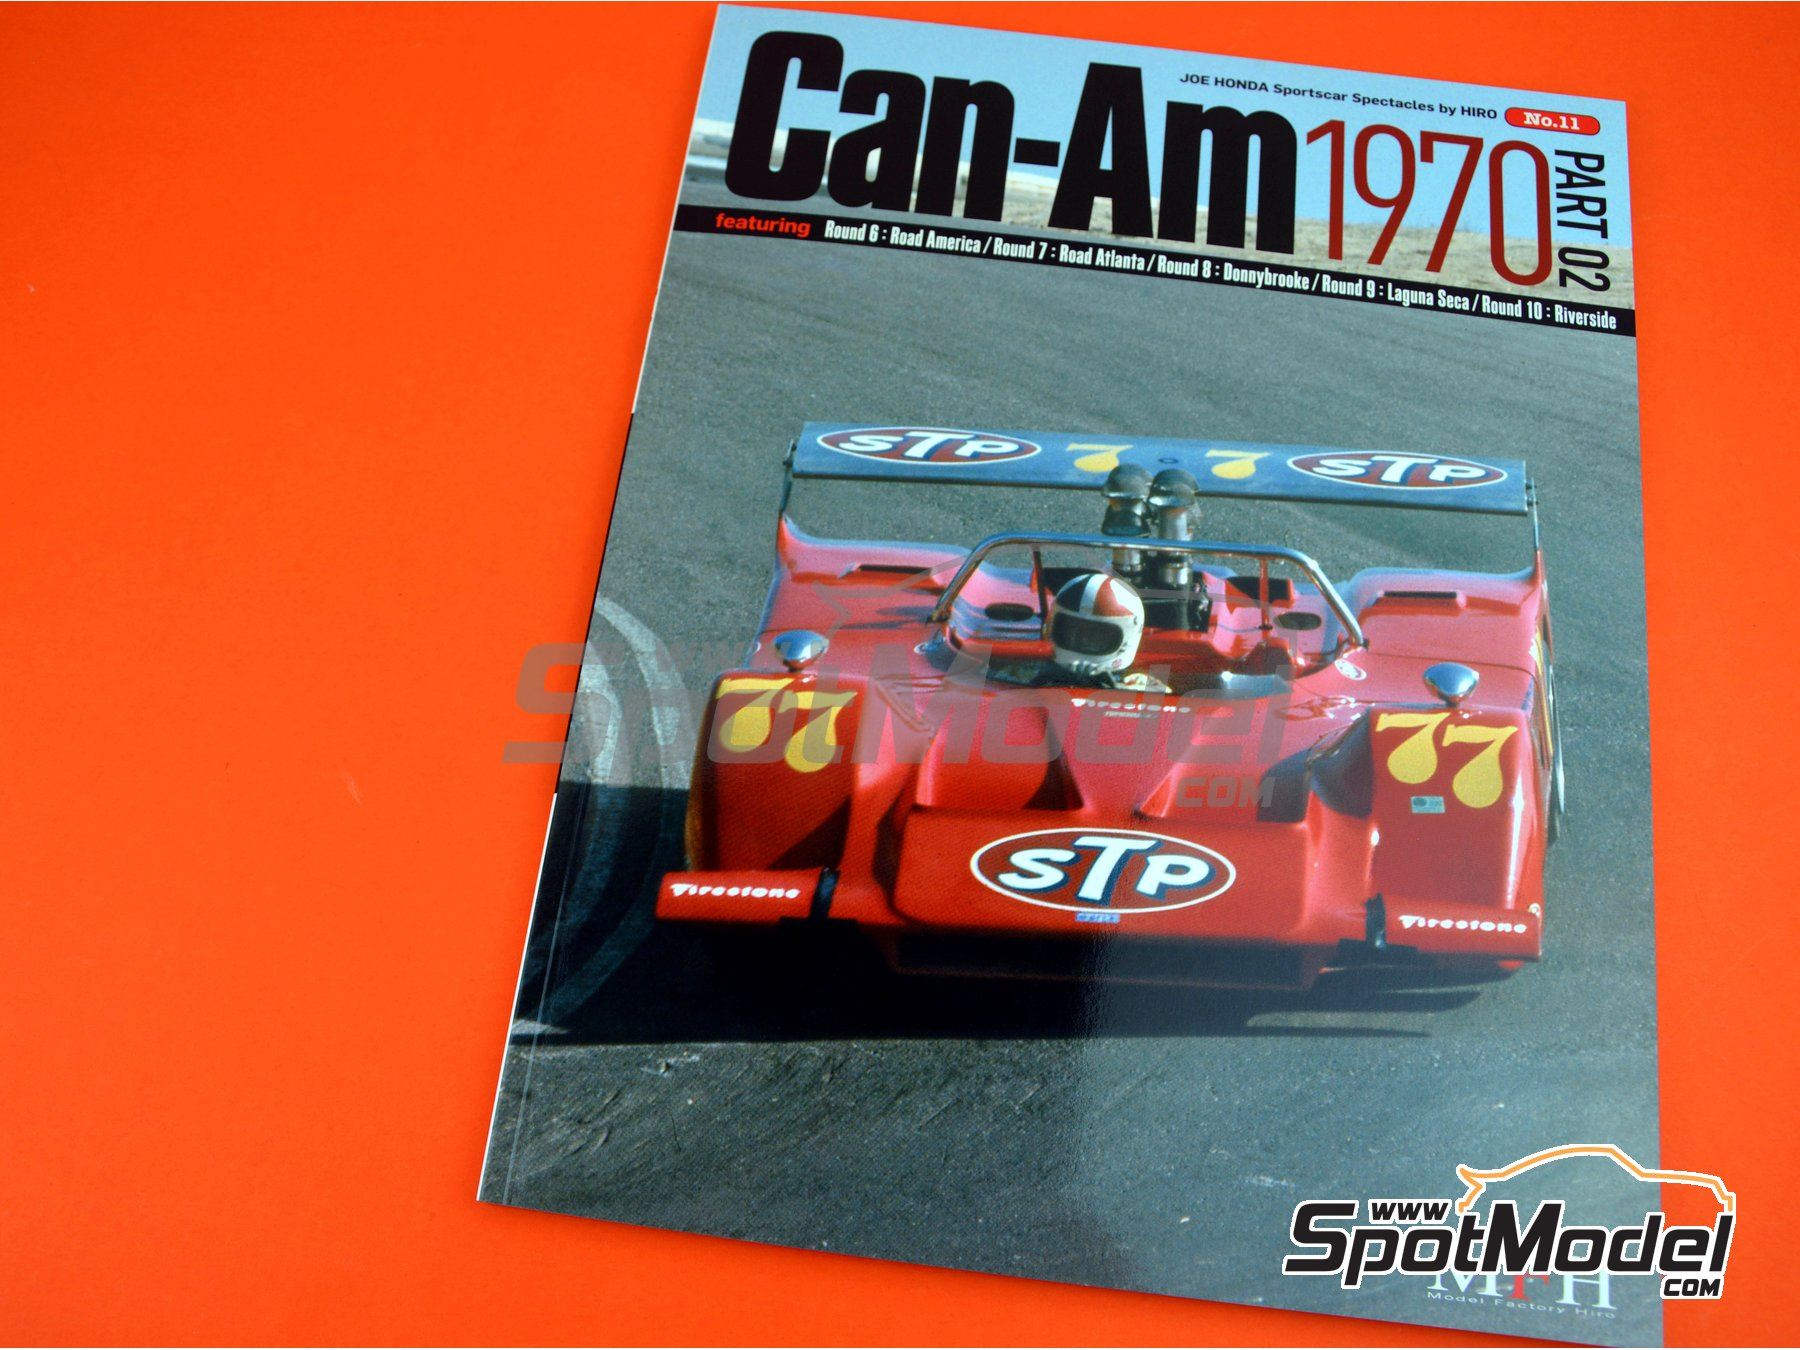 Image 1: JOE HONDA Sportcar Spectacles by Hiro: Part 2 - Can-Am Canadian-American Challenge Cup 1970 | Reference / walkaround book manufactured by Model Factory Hiro (ref. MFH-SS011)